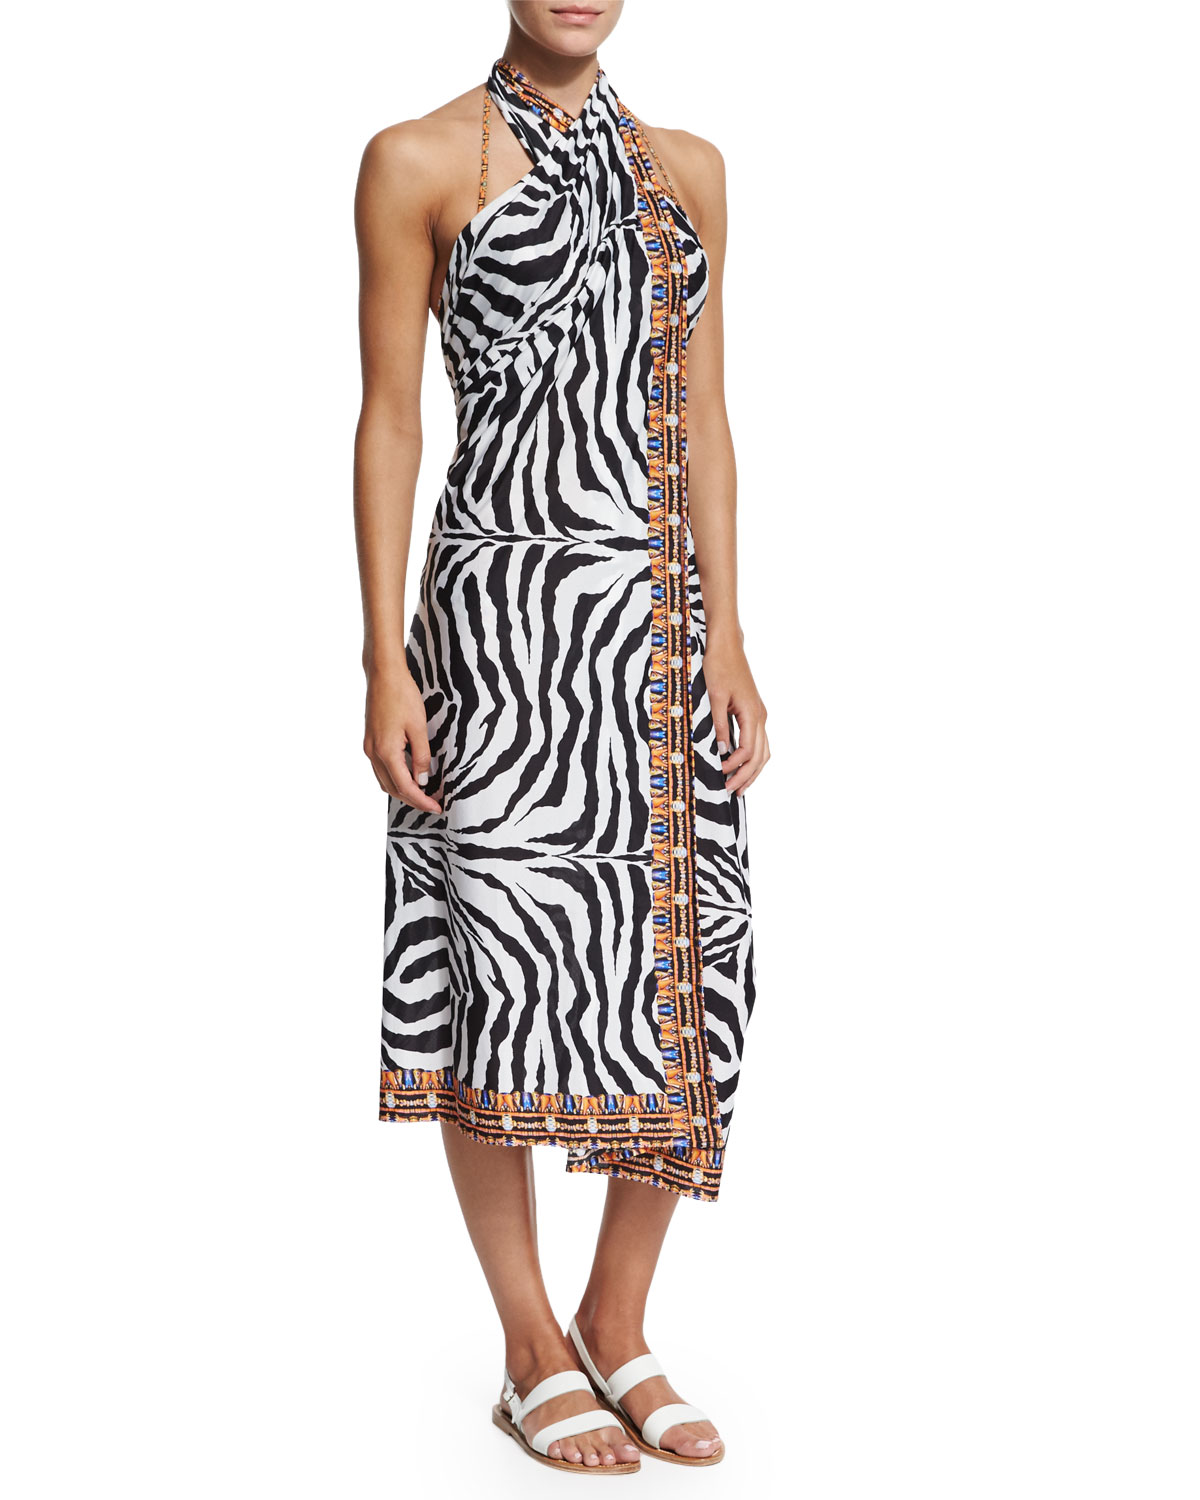 The Fiera Convertible Zebra-Print Sarong Coverup